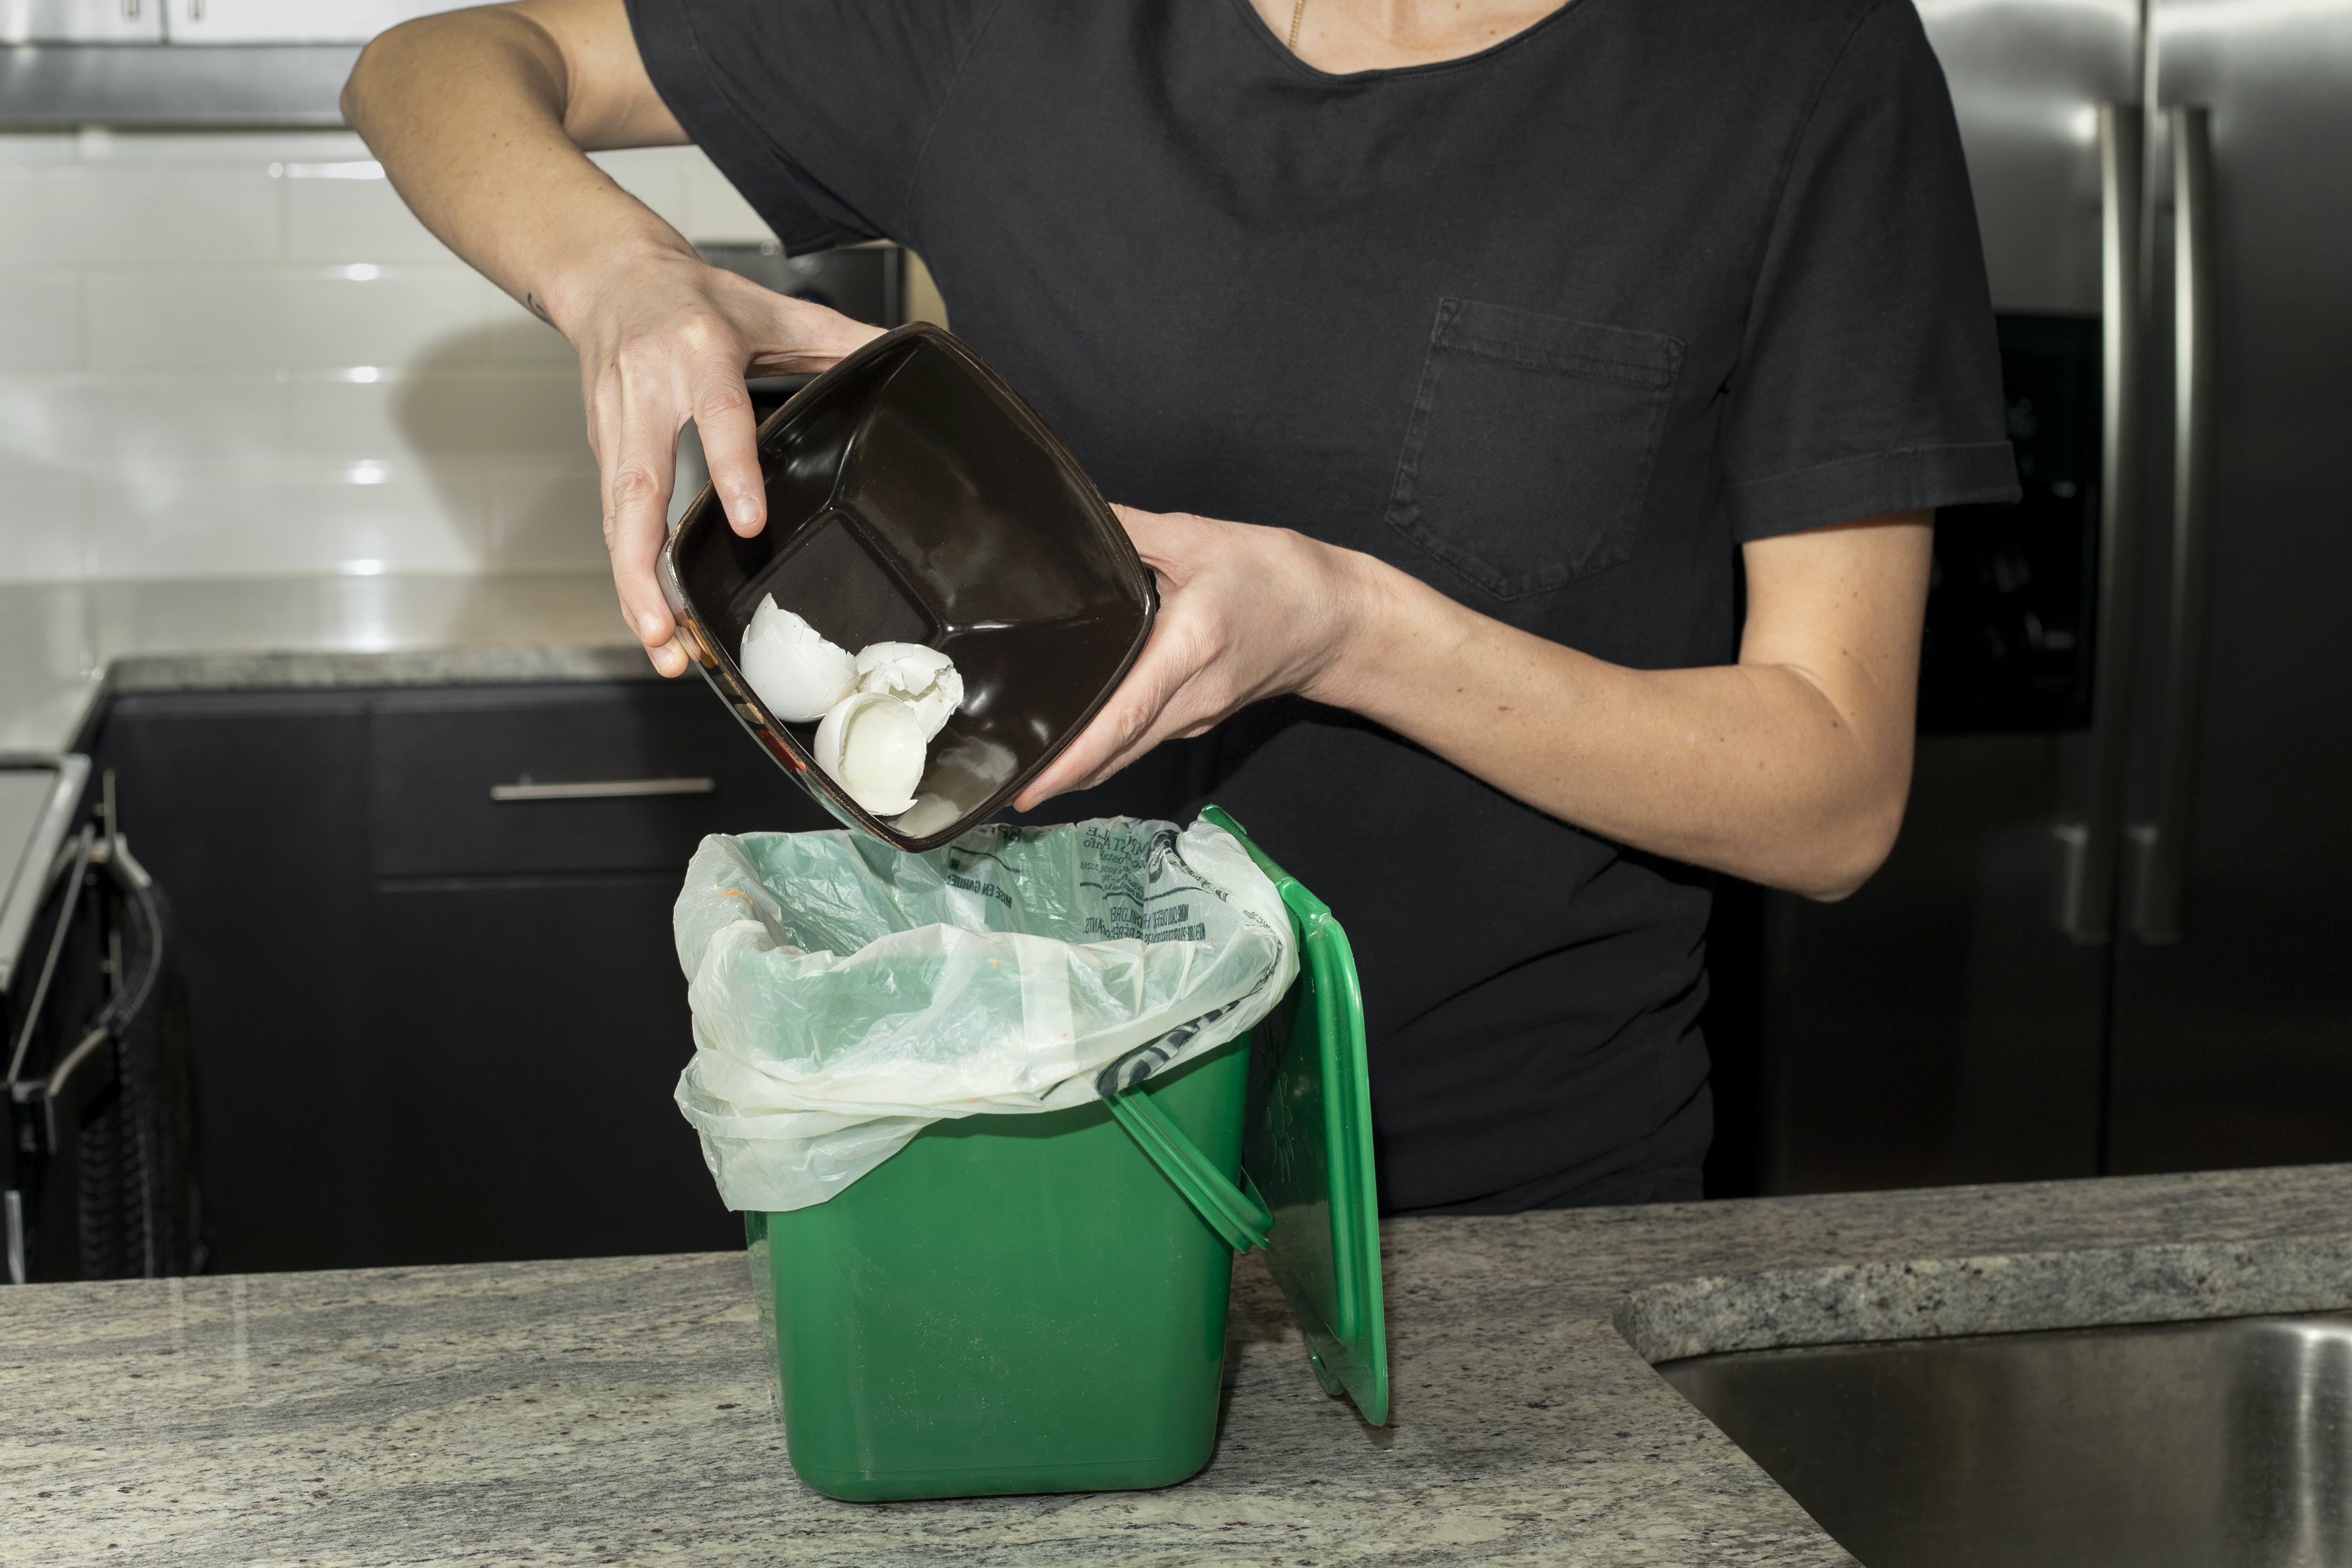 Organic materials like egg shells being placed in the kitchen container